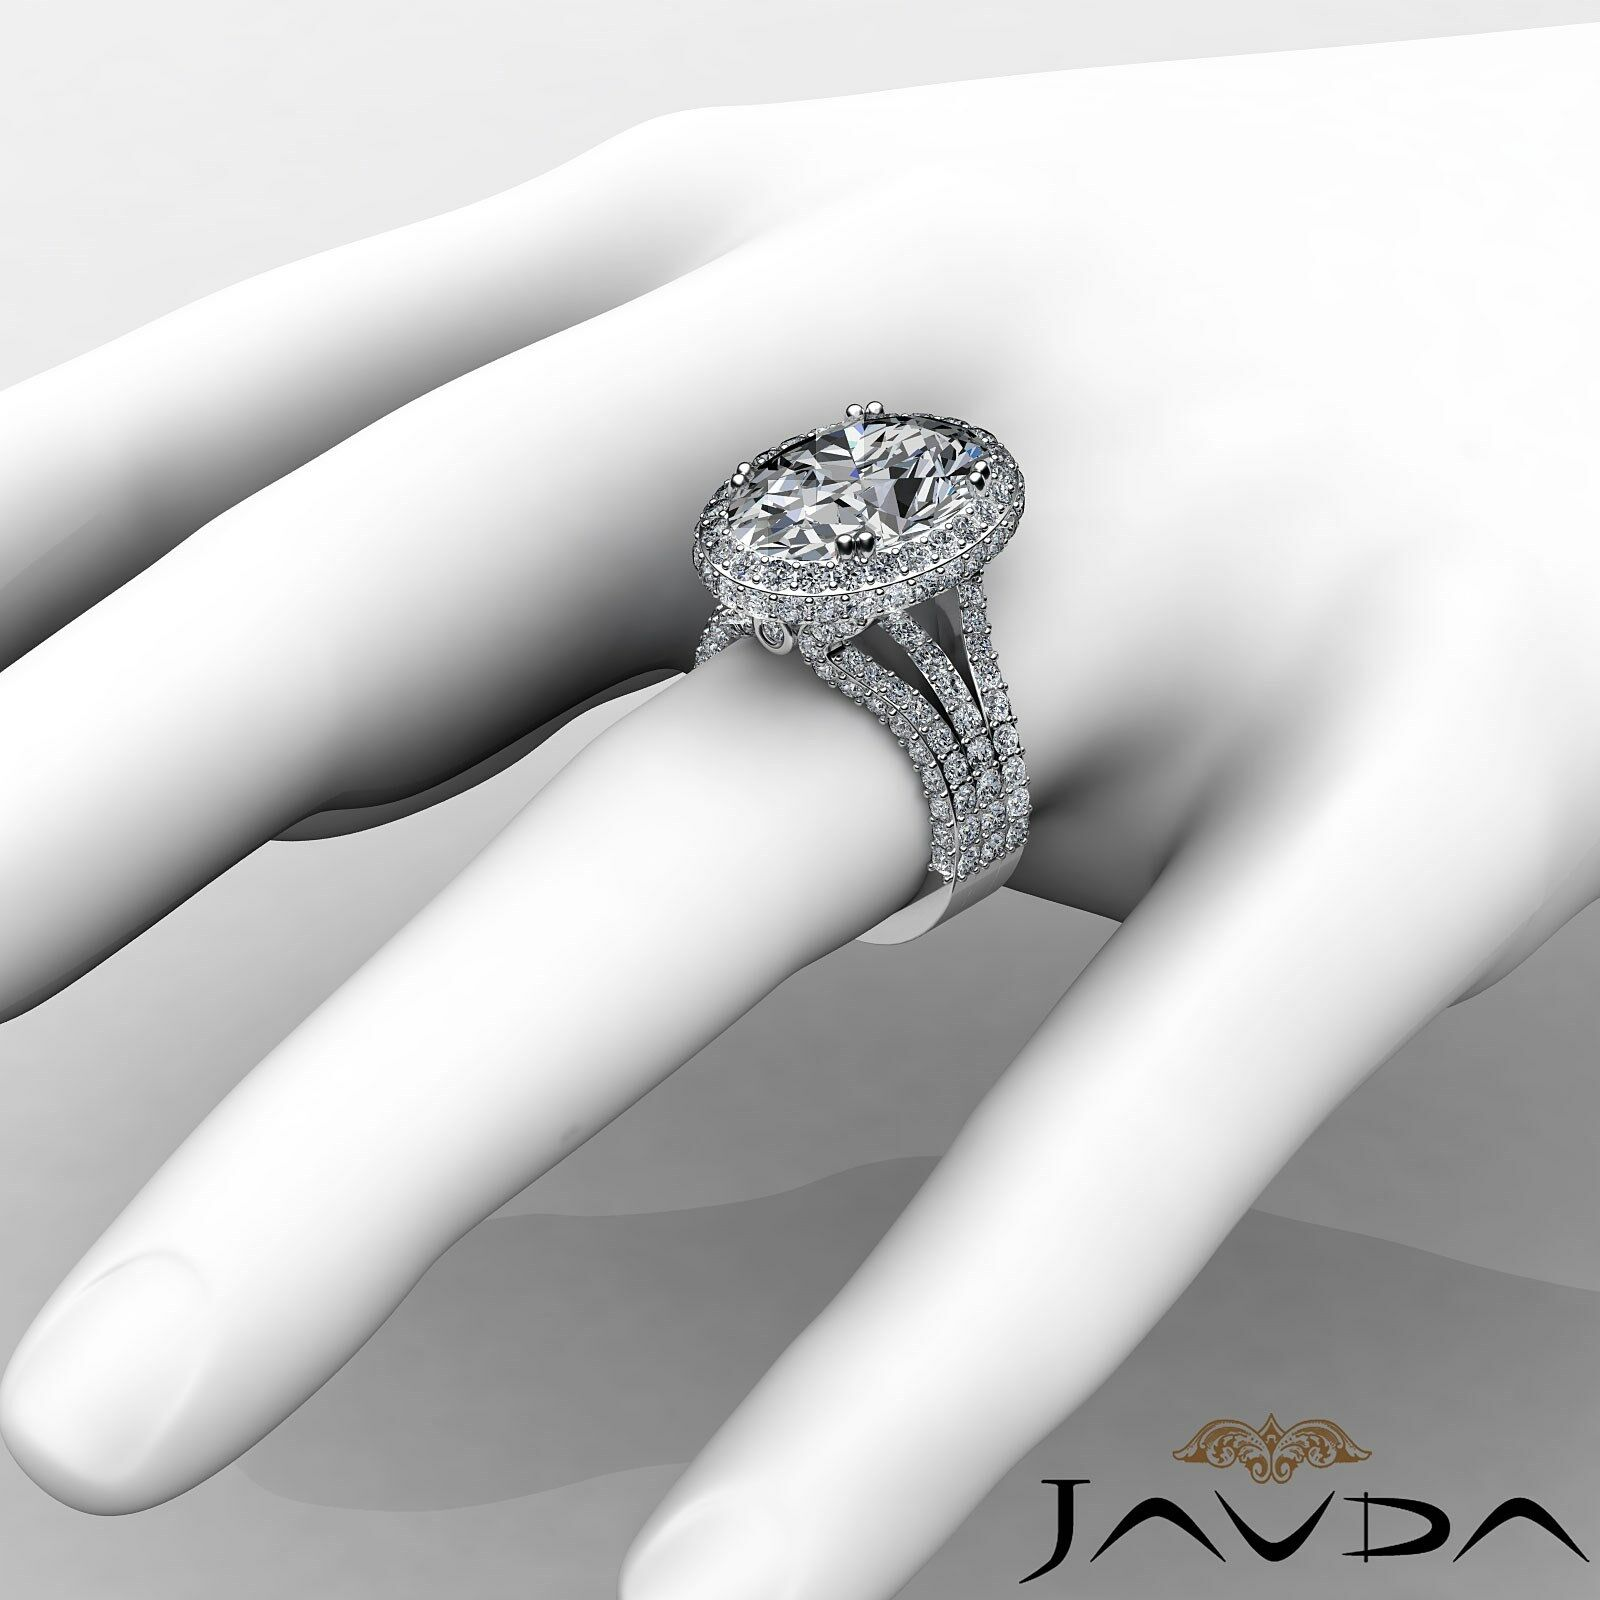 Double Prong Circa Halo Pave Bezel Oval Diamond Engagement Ring GIA F VS1 3.65Ct 3